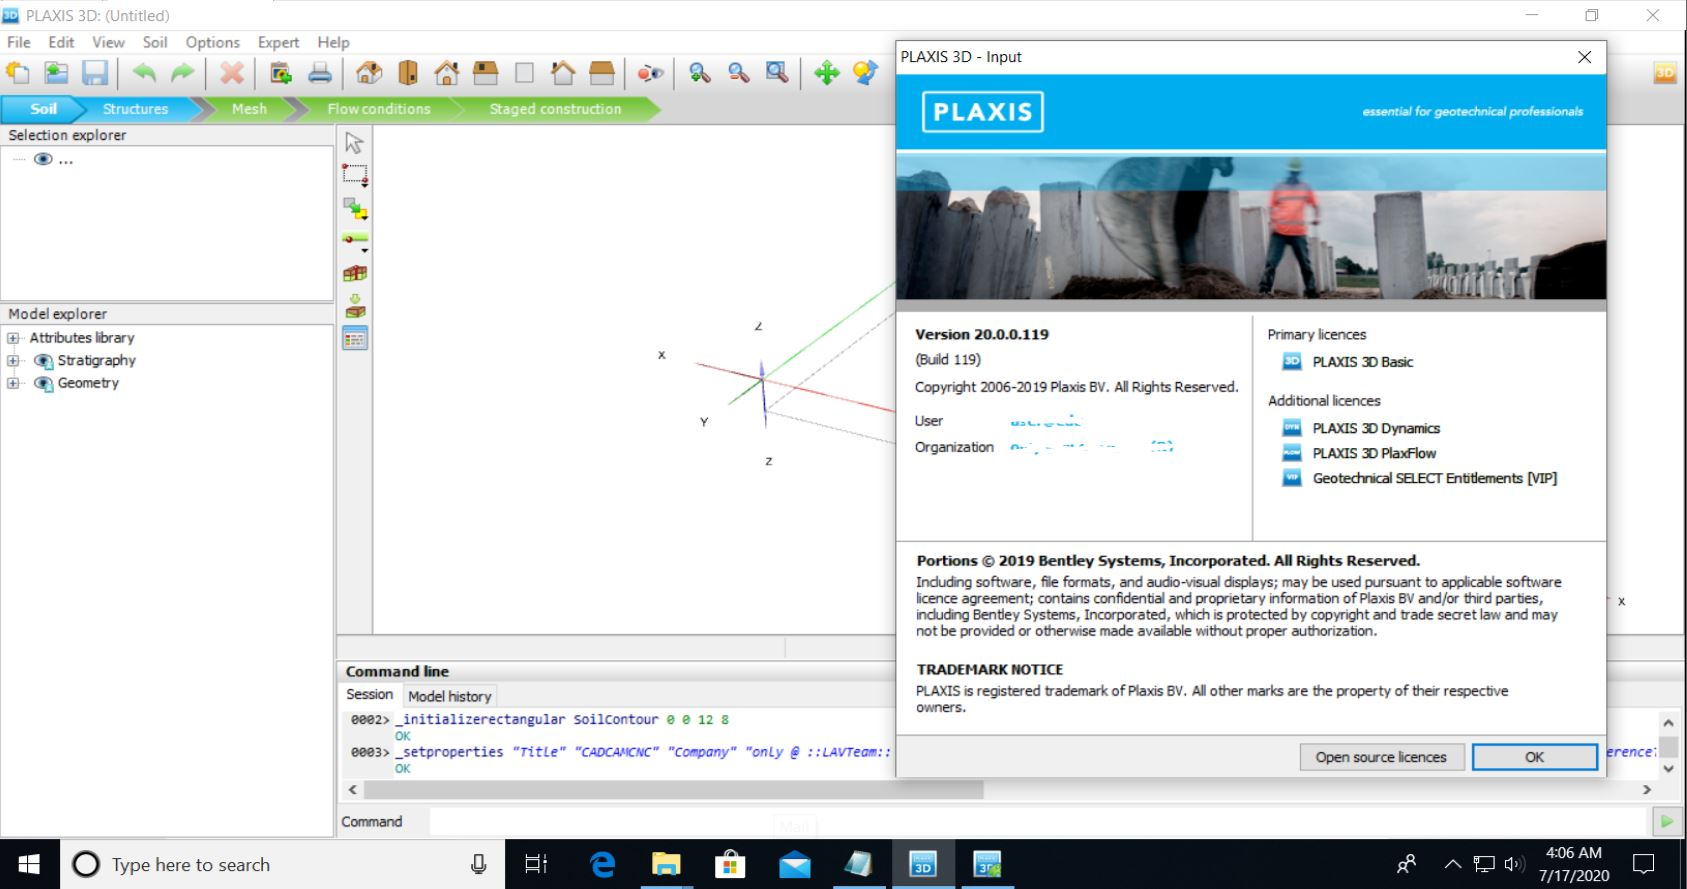 Working with PLAXIS 3D CONNECT Edition V20 full license